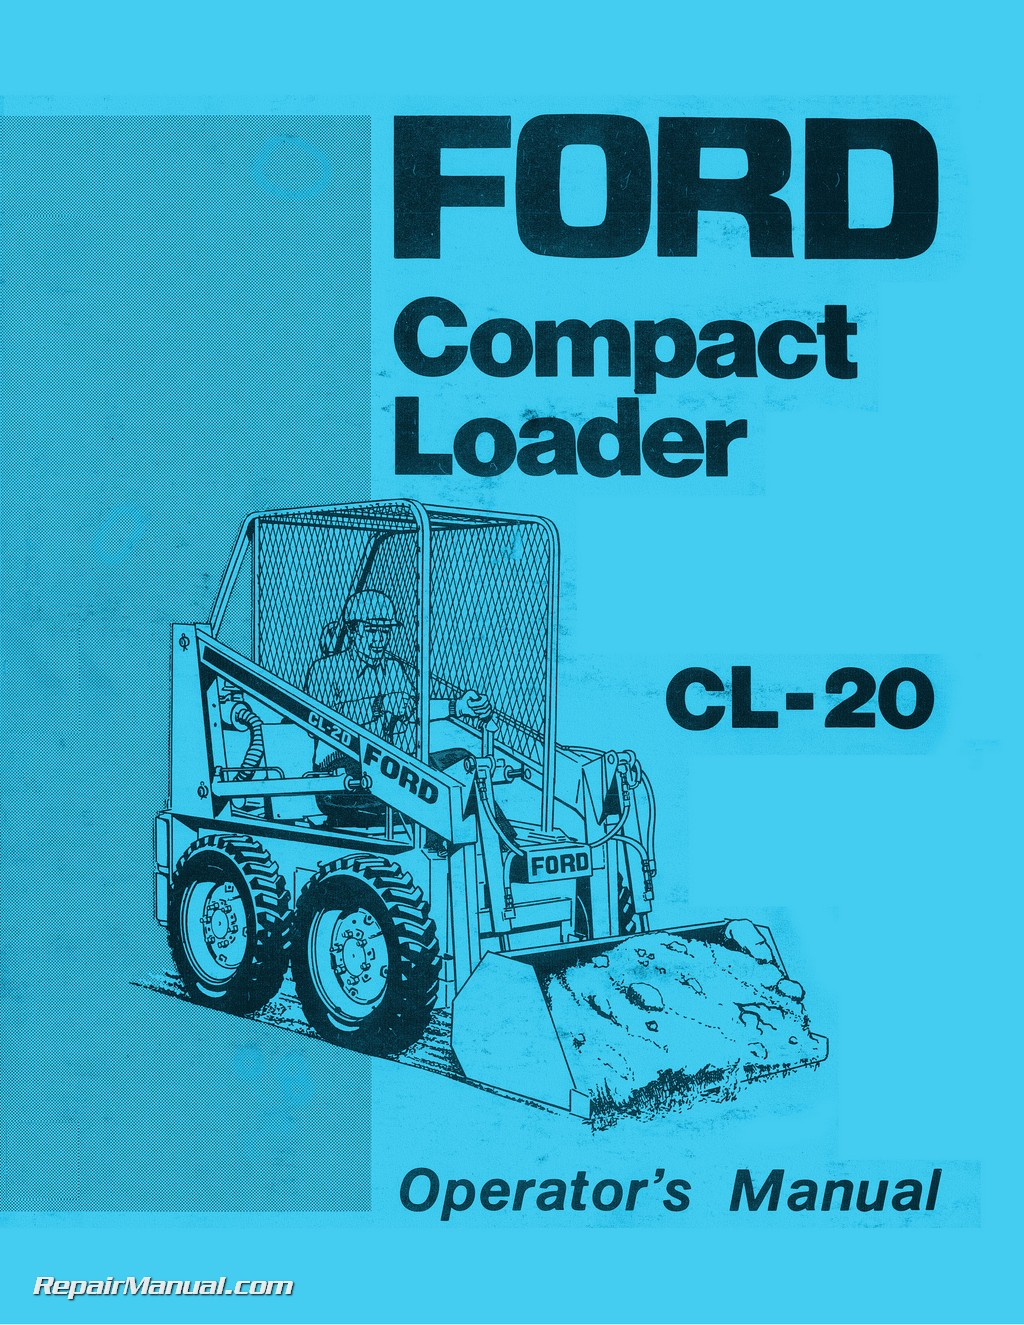 Ford CL20 Skid Steer Compact Loader Printed Operators Manual